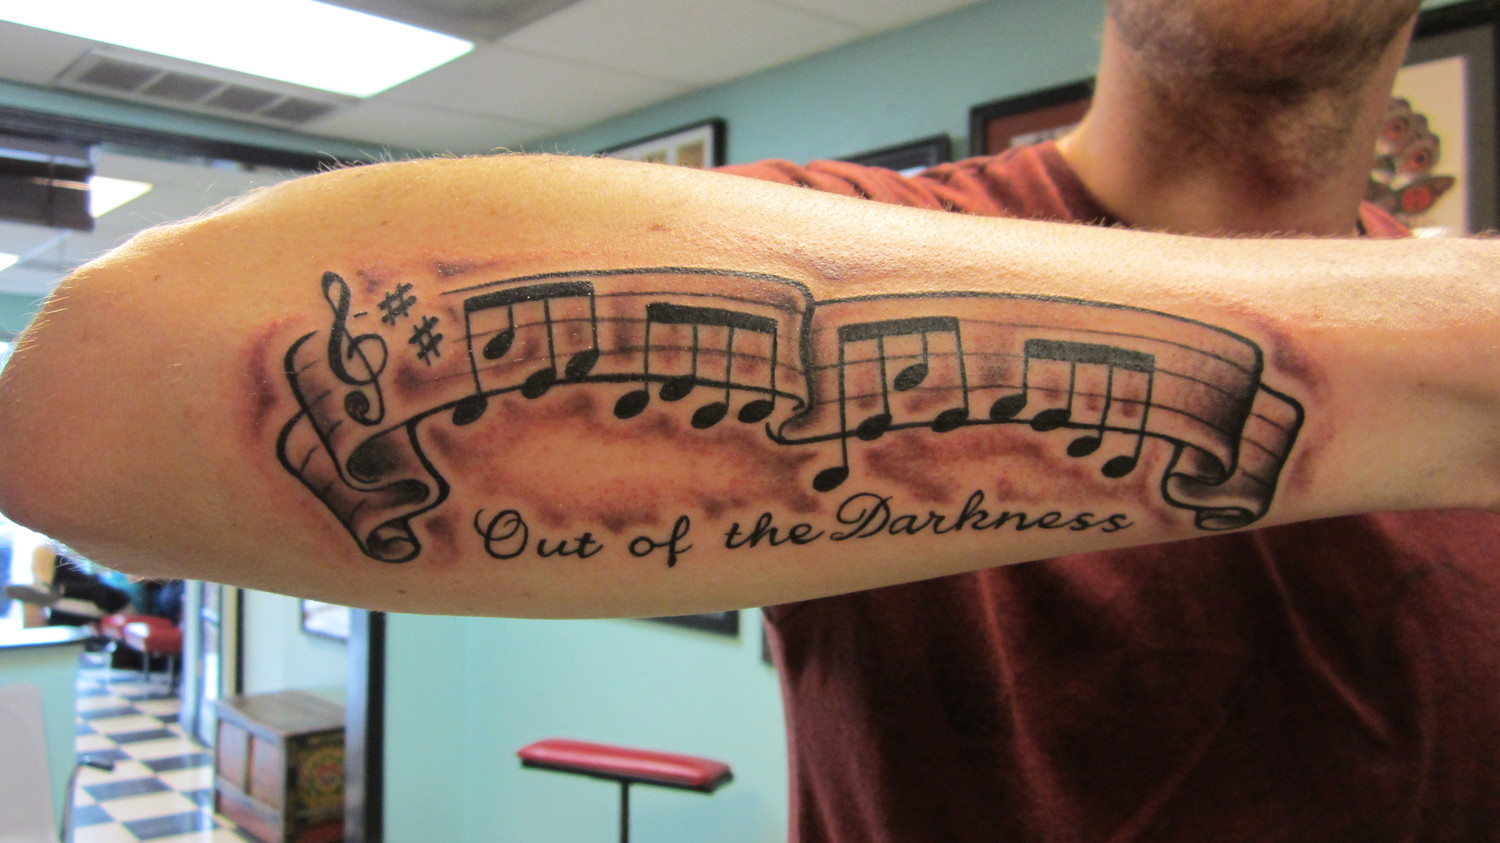 Out Of The Darkness - Black Ink Music Knots Tattoo On Man Right Arm By Roger McMahon